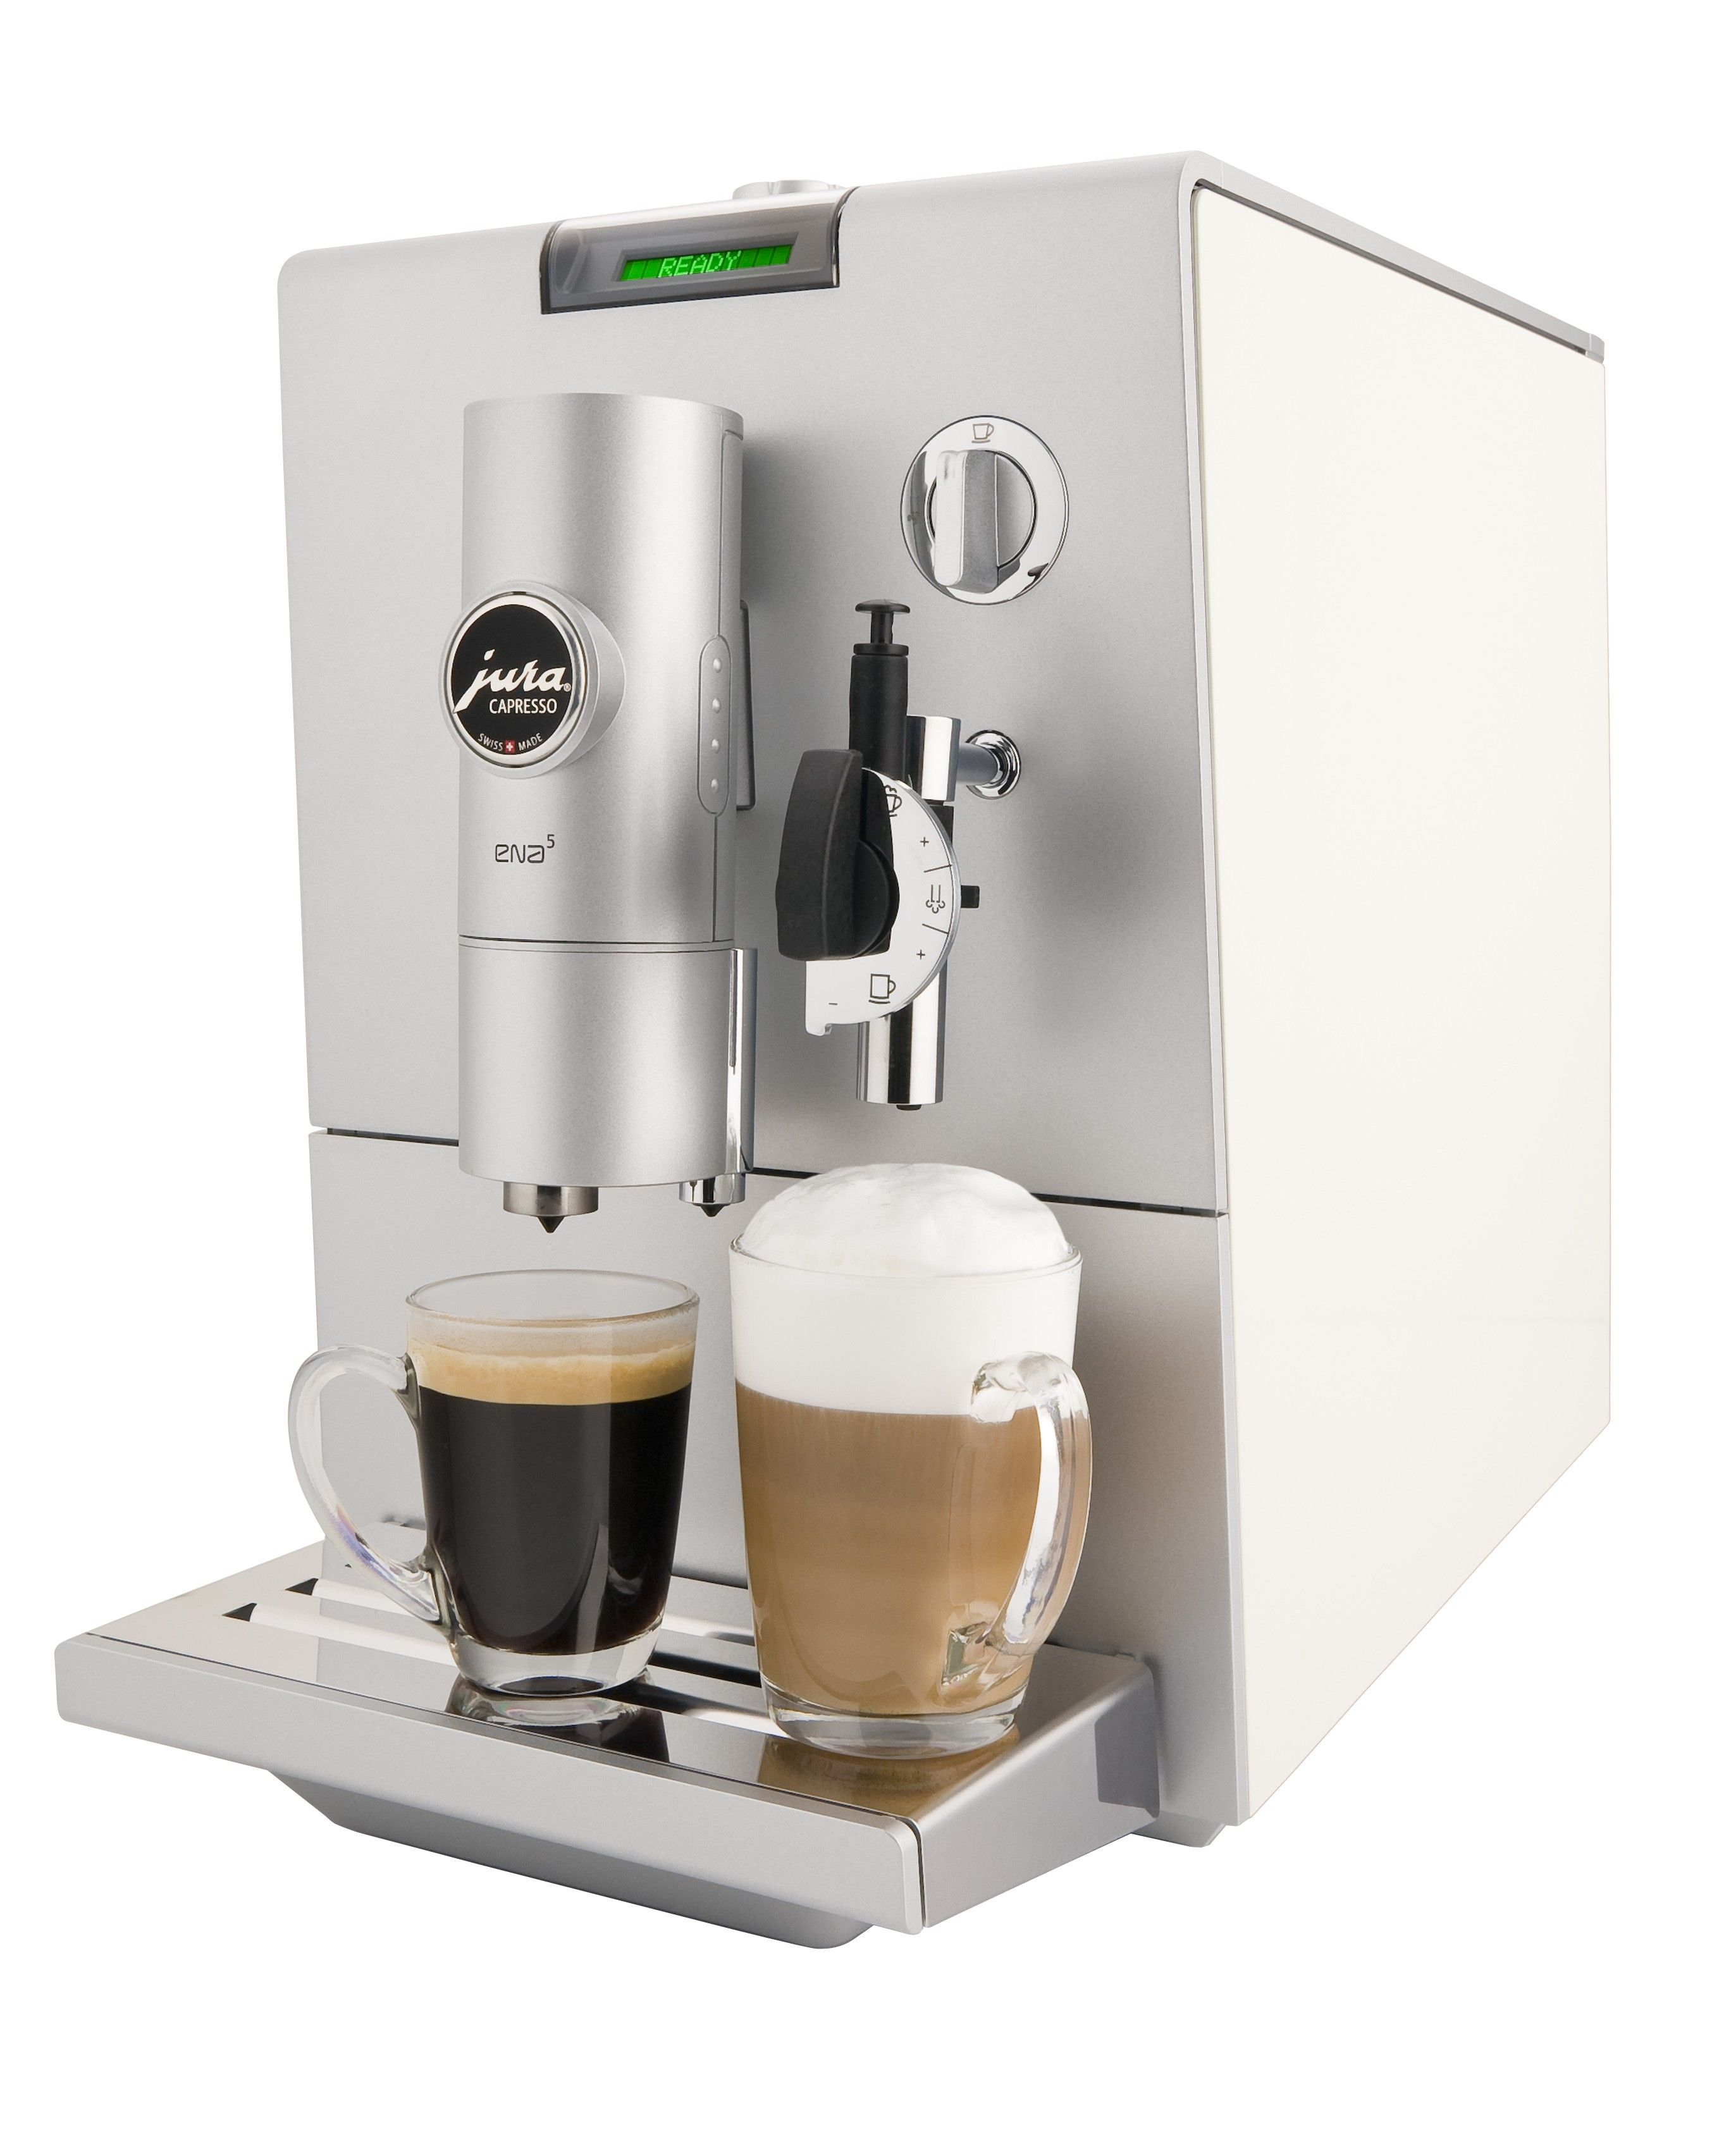 Refurbished Jura Capresso ENA 5 Black Coffee center